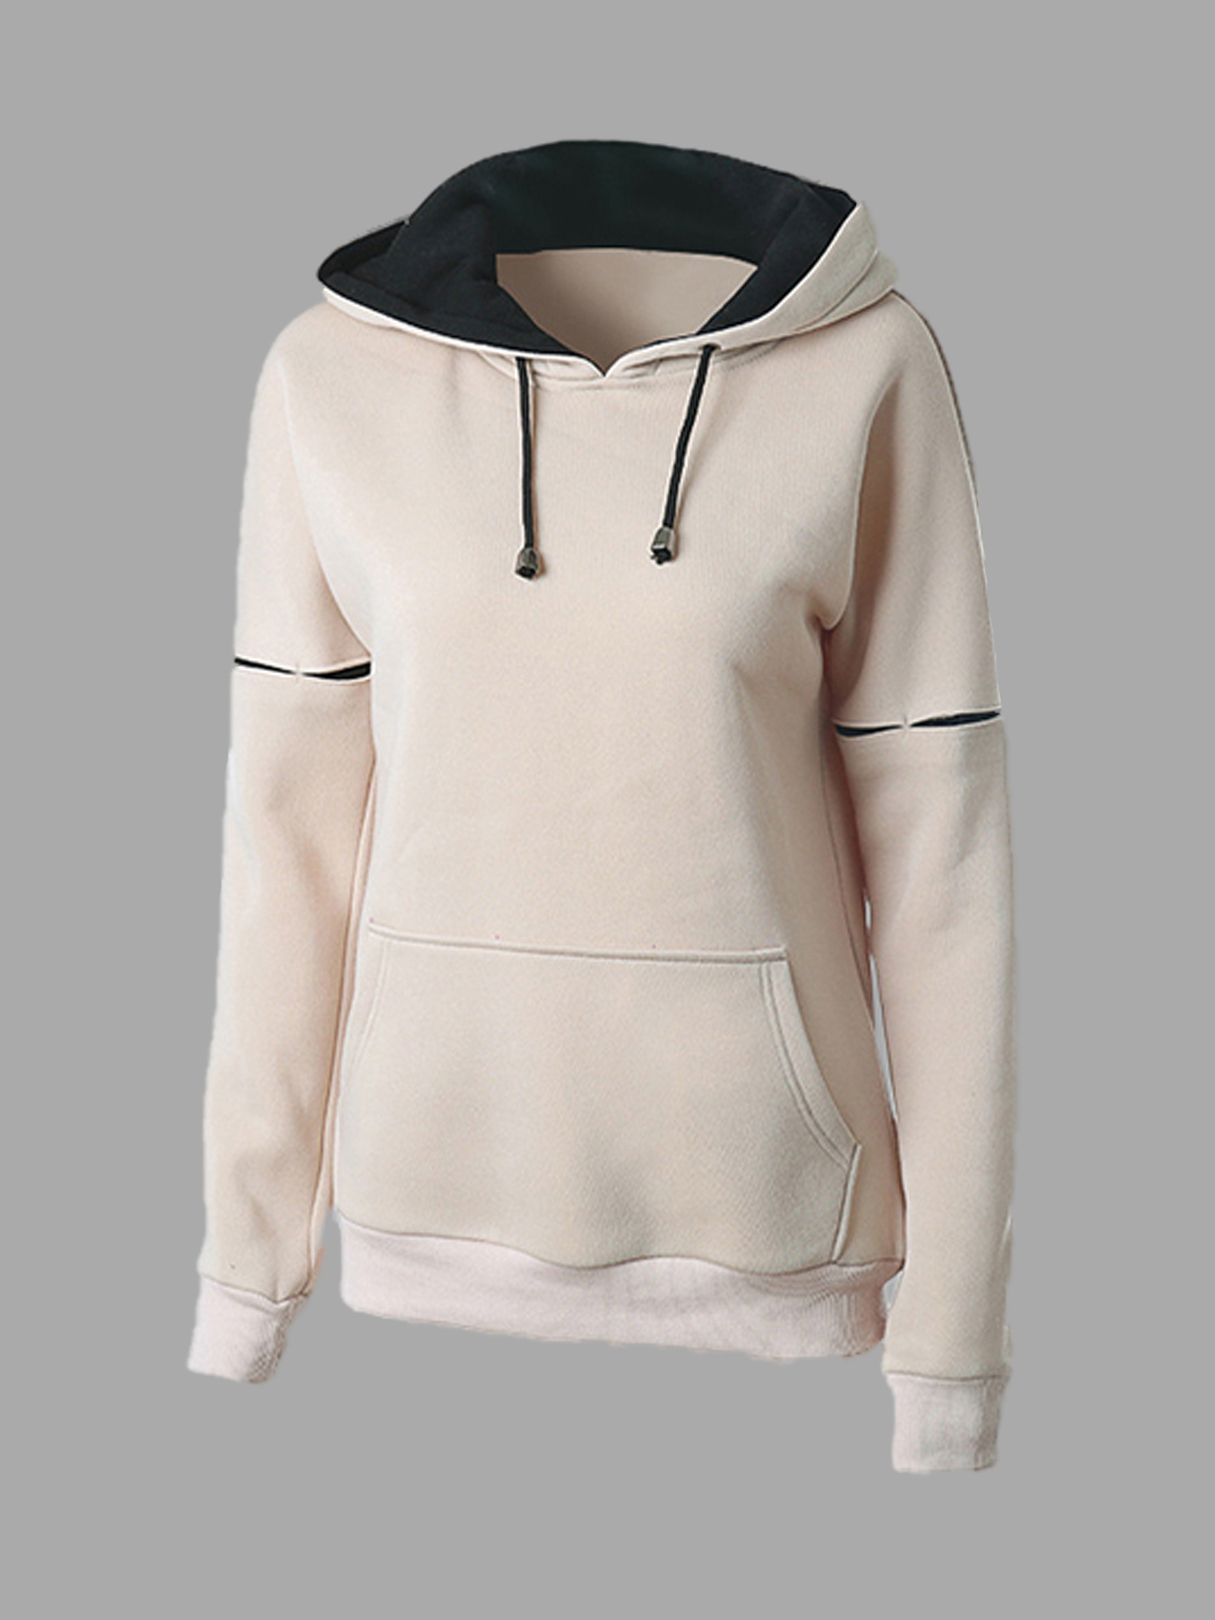 Double Color Hooded Pocket Front Sweatshirt купить